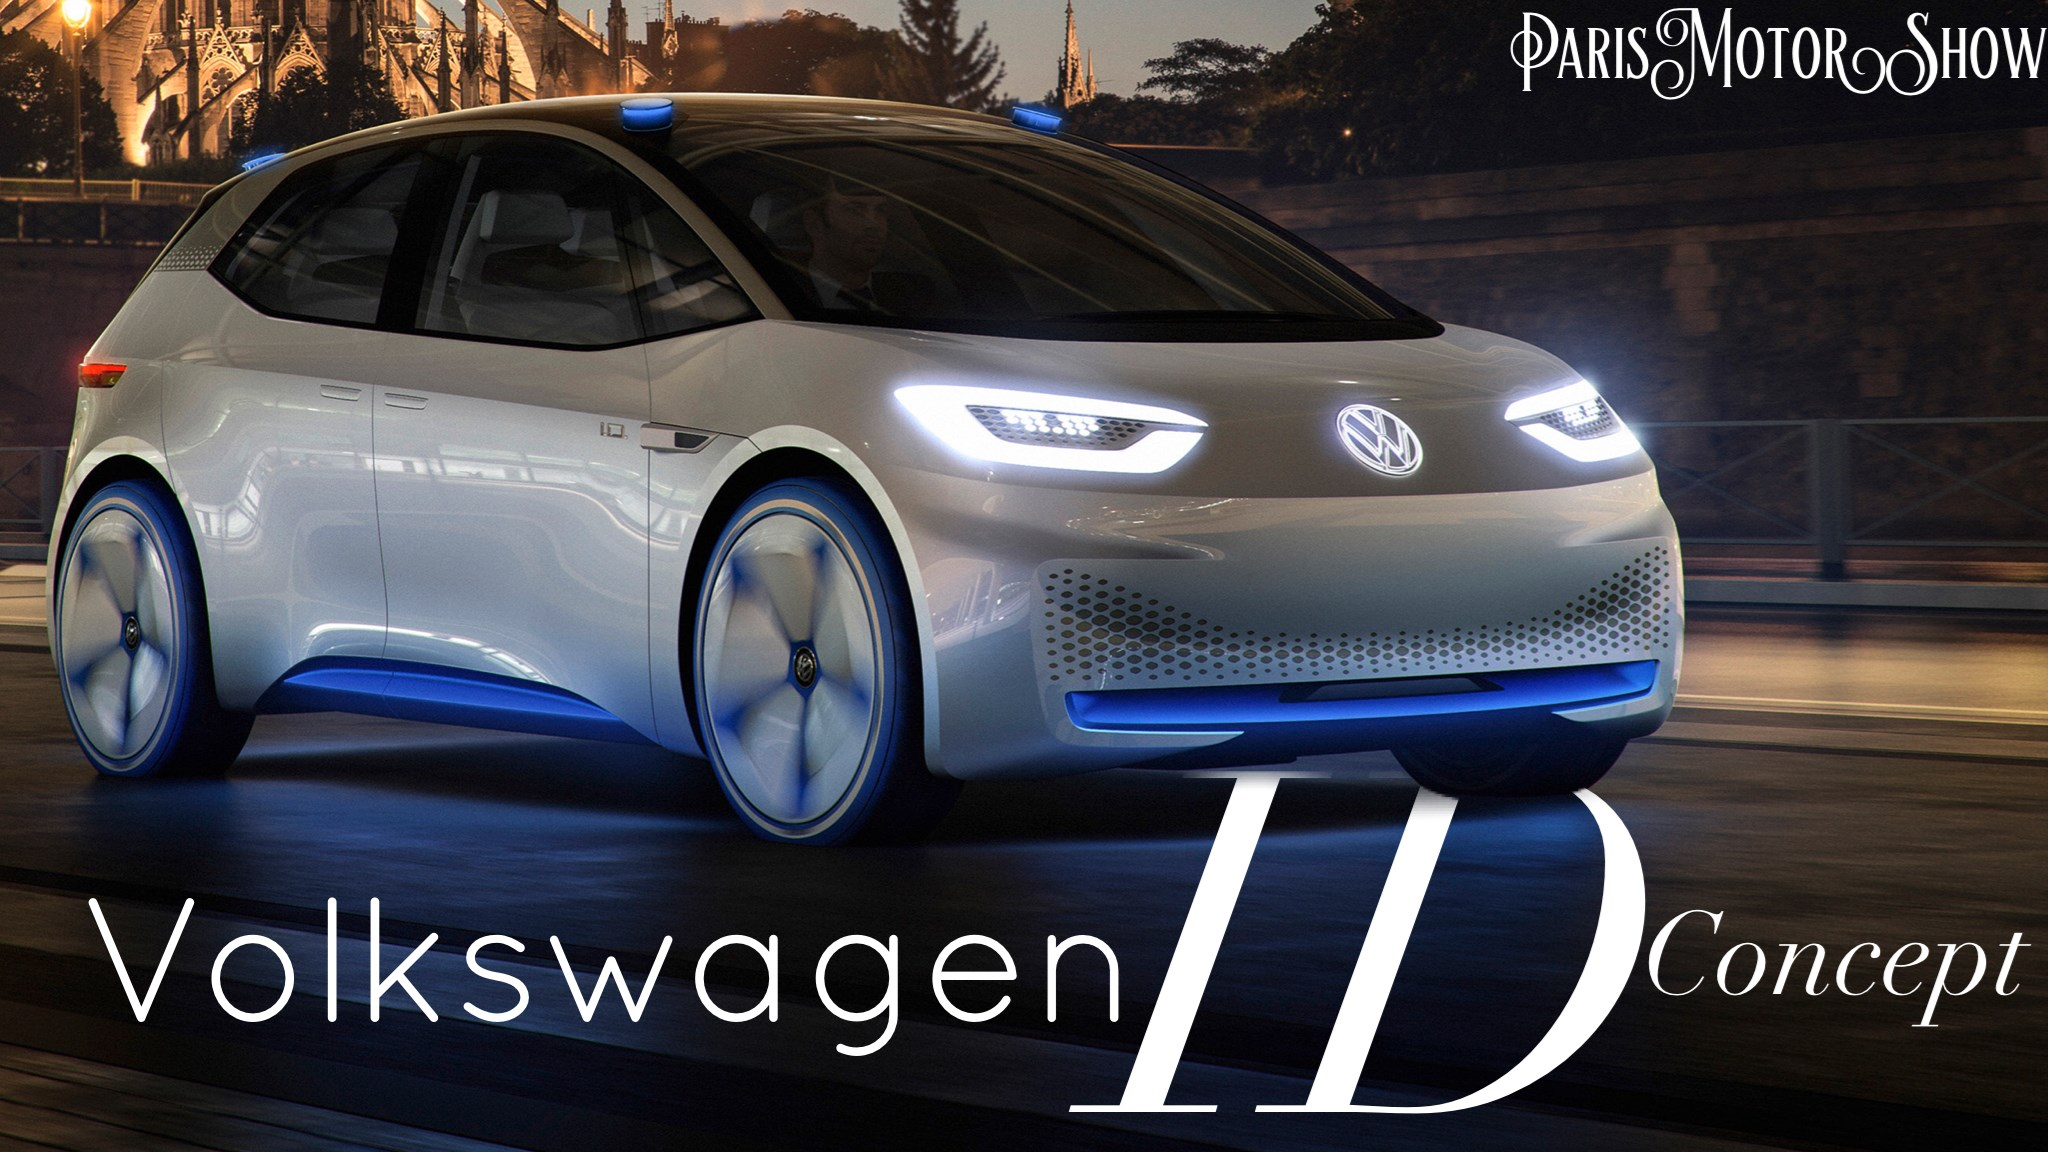 Volkswagen's ID Concept Makes Paris Debut